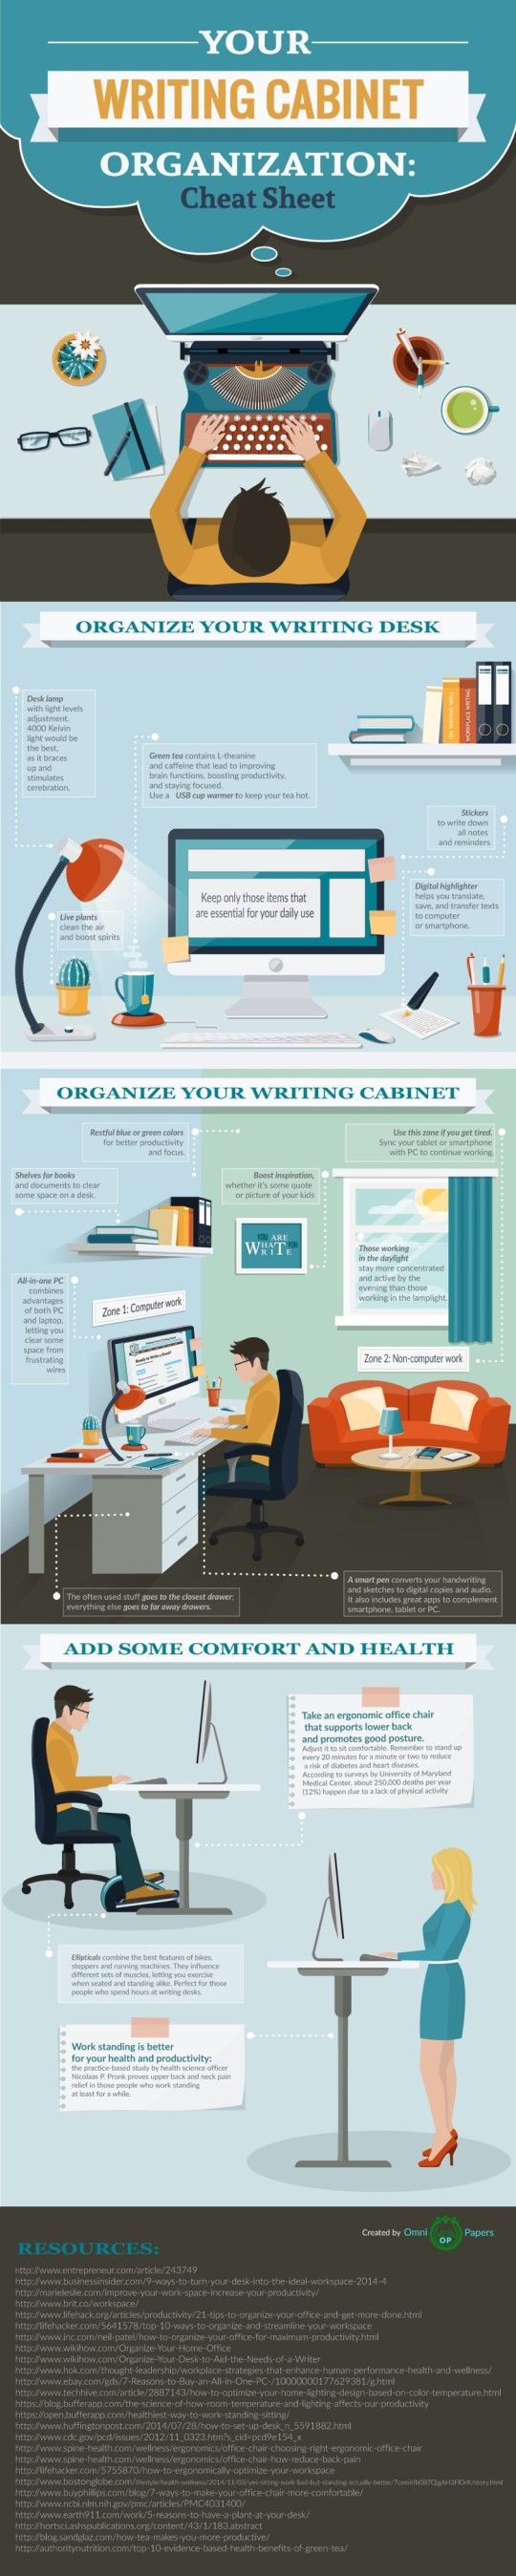 Best tips for aspiring writers in 14 helpful infographics tips to organize a writing desk infographic fandeluxe Gallery